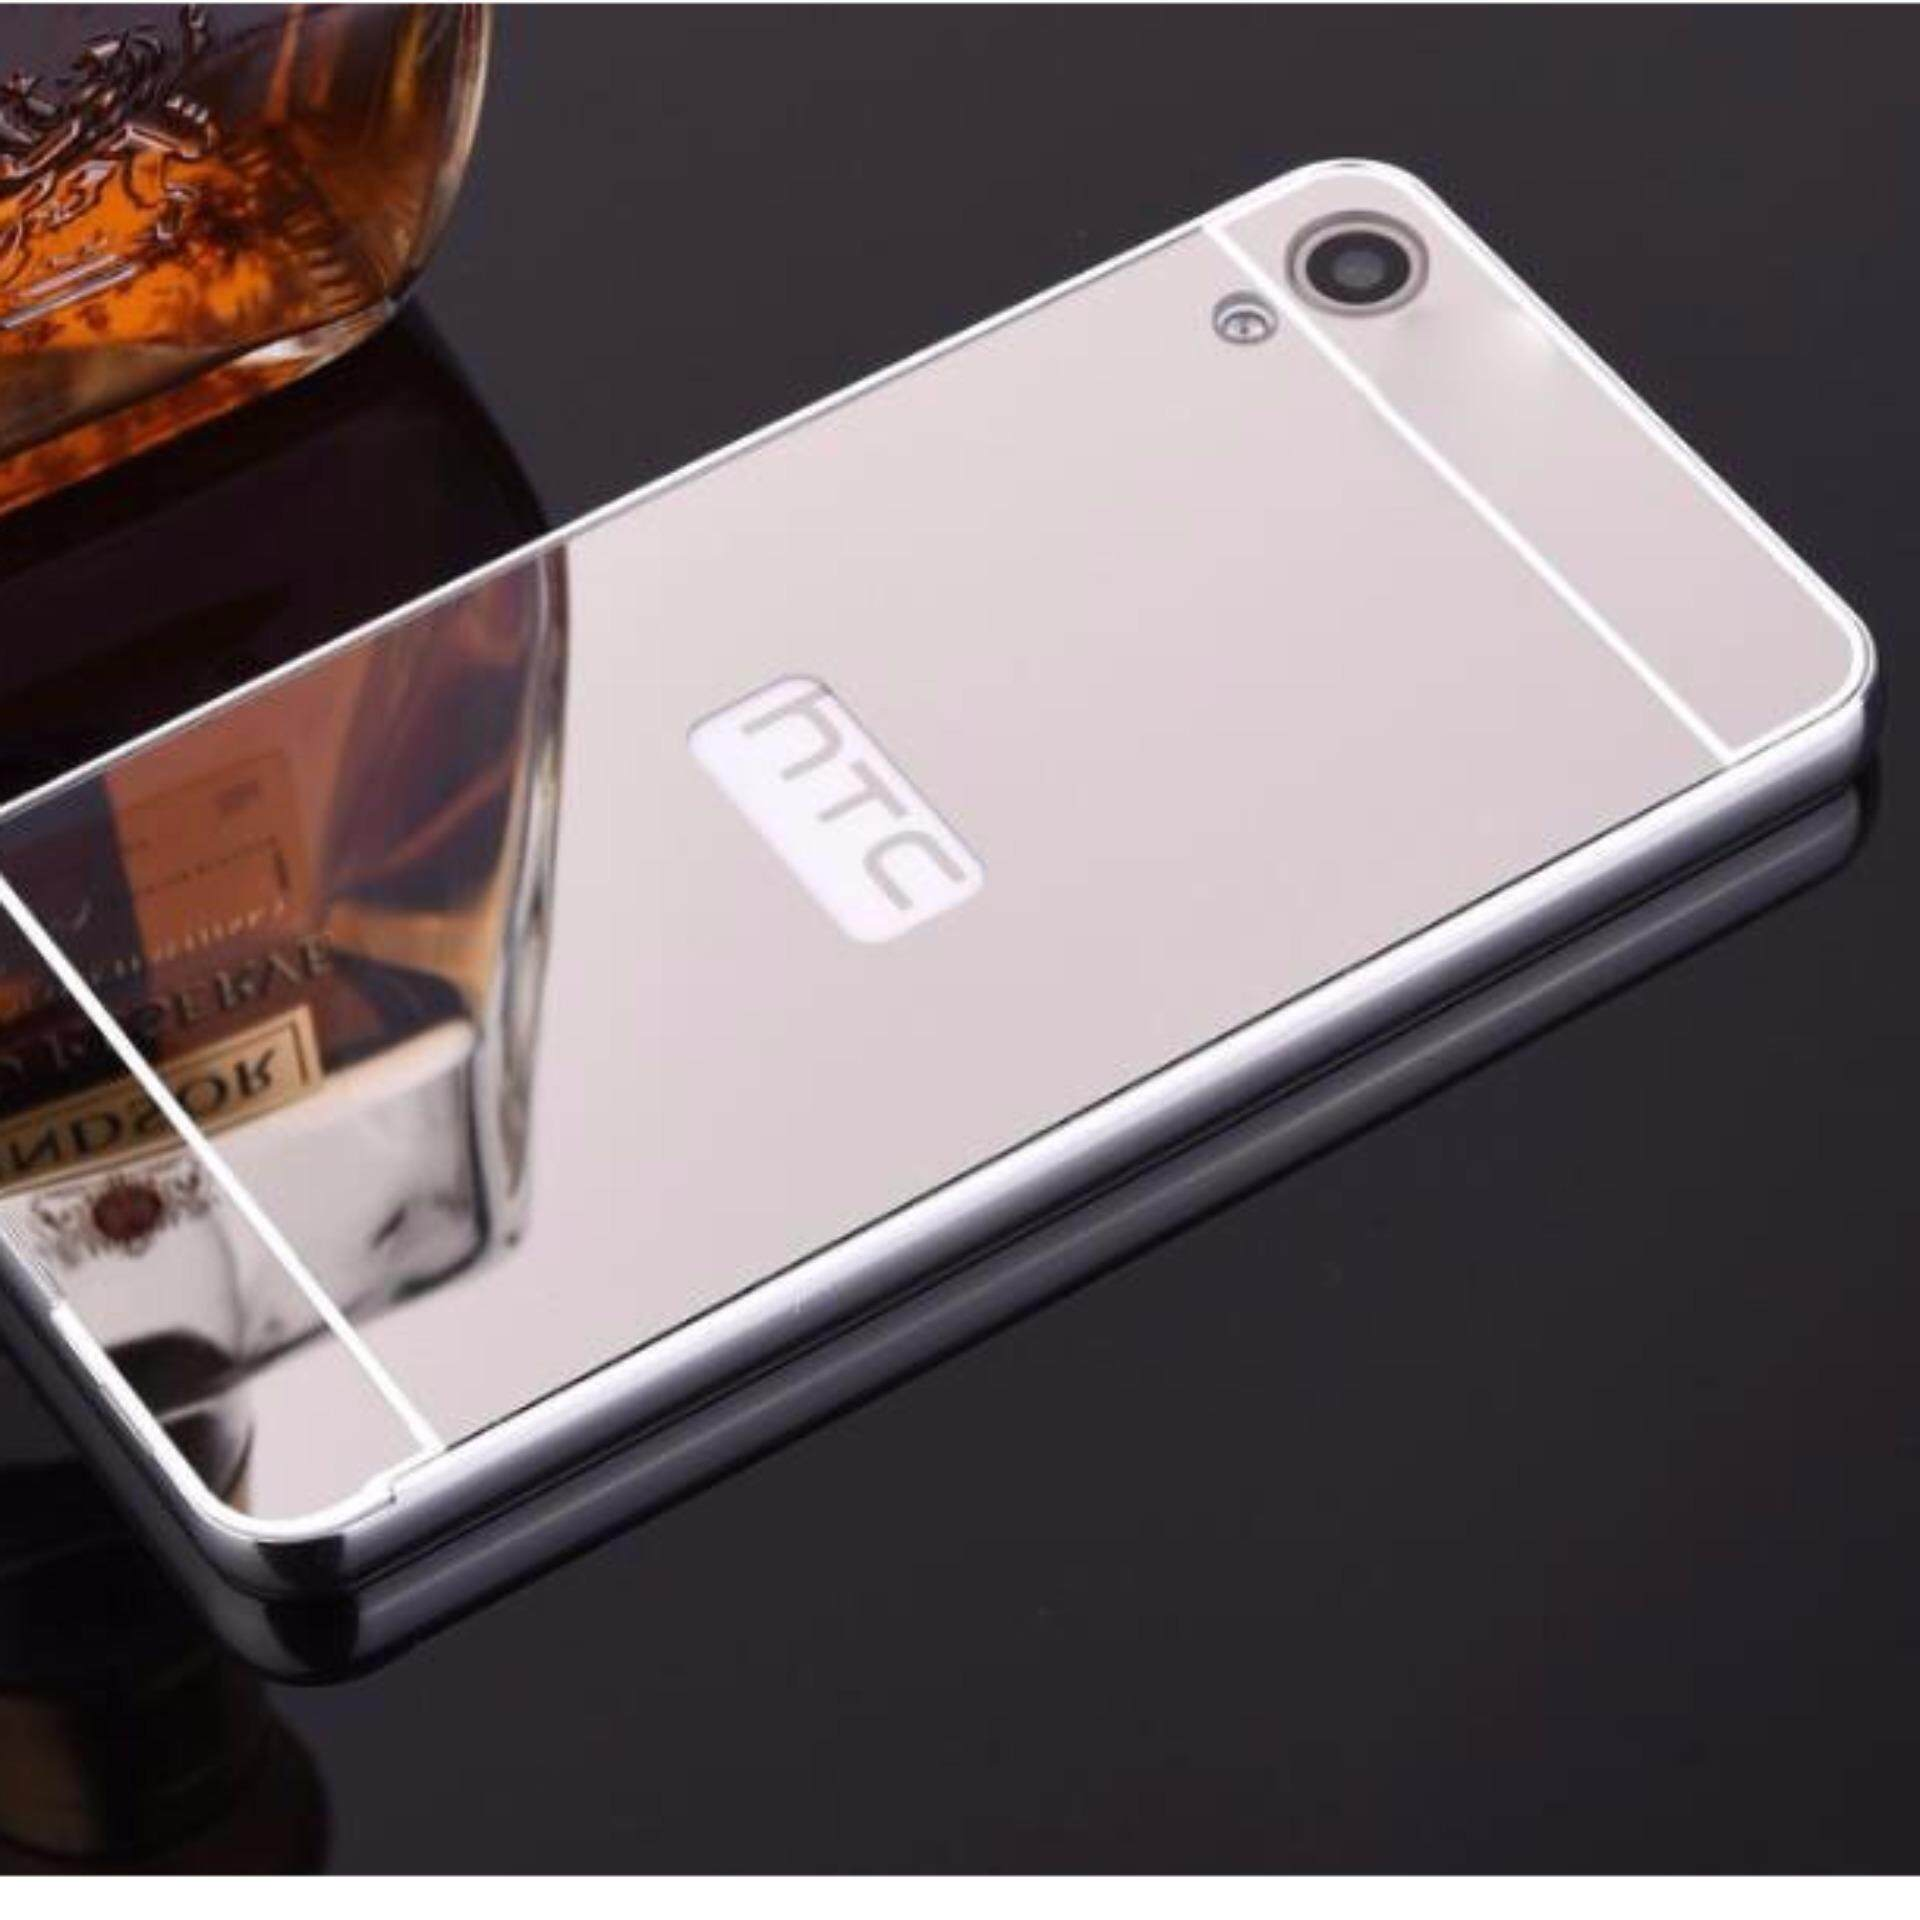 ... Case Cover For Oppo A37 rose gold intl. Source. ' For HTC Desire 830 Ultra Slim Aluminum Frame + Plated Metal Mirror PC